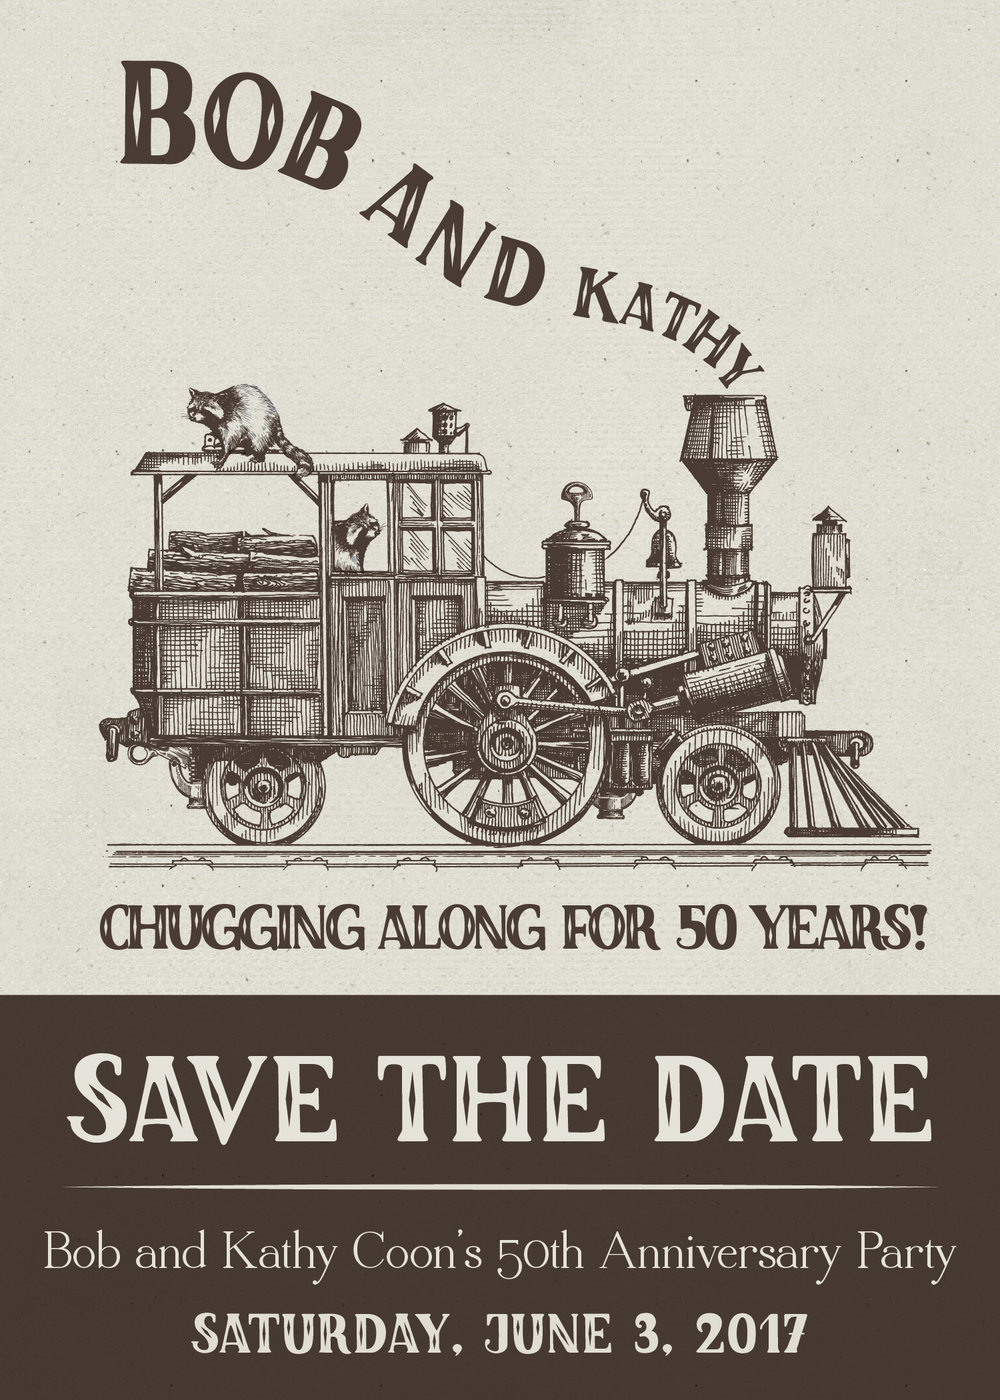 TrainSavetheDate-01.jpg